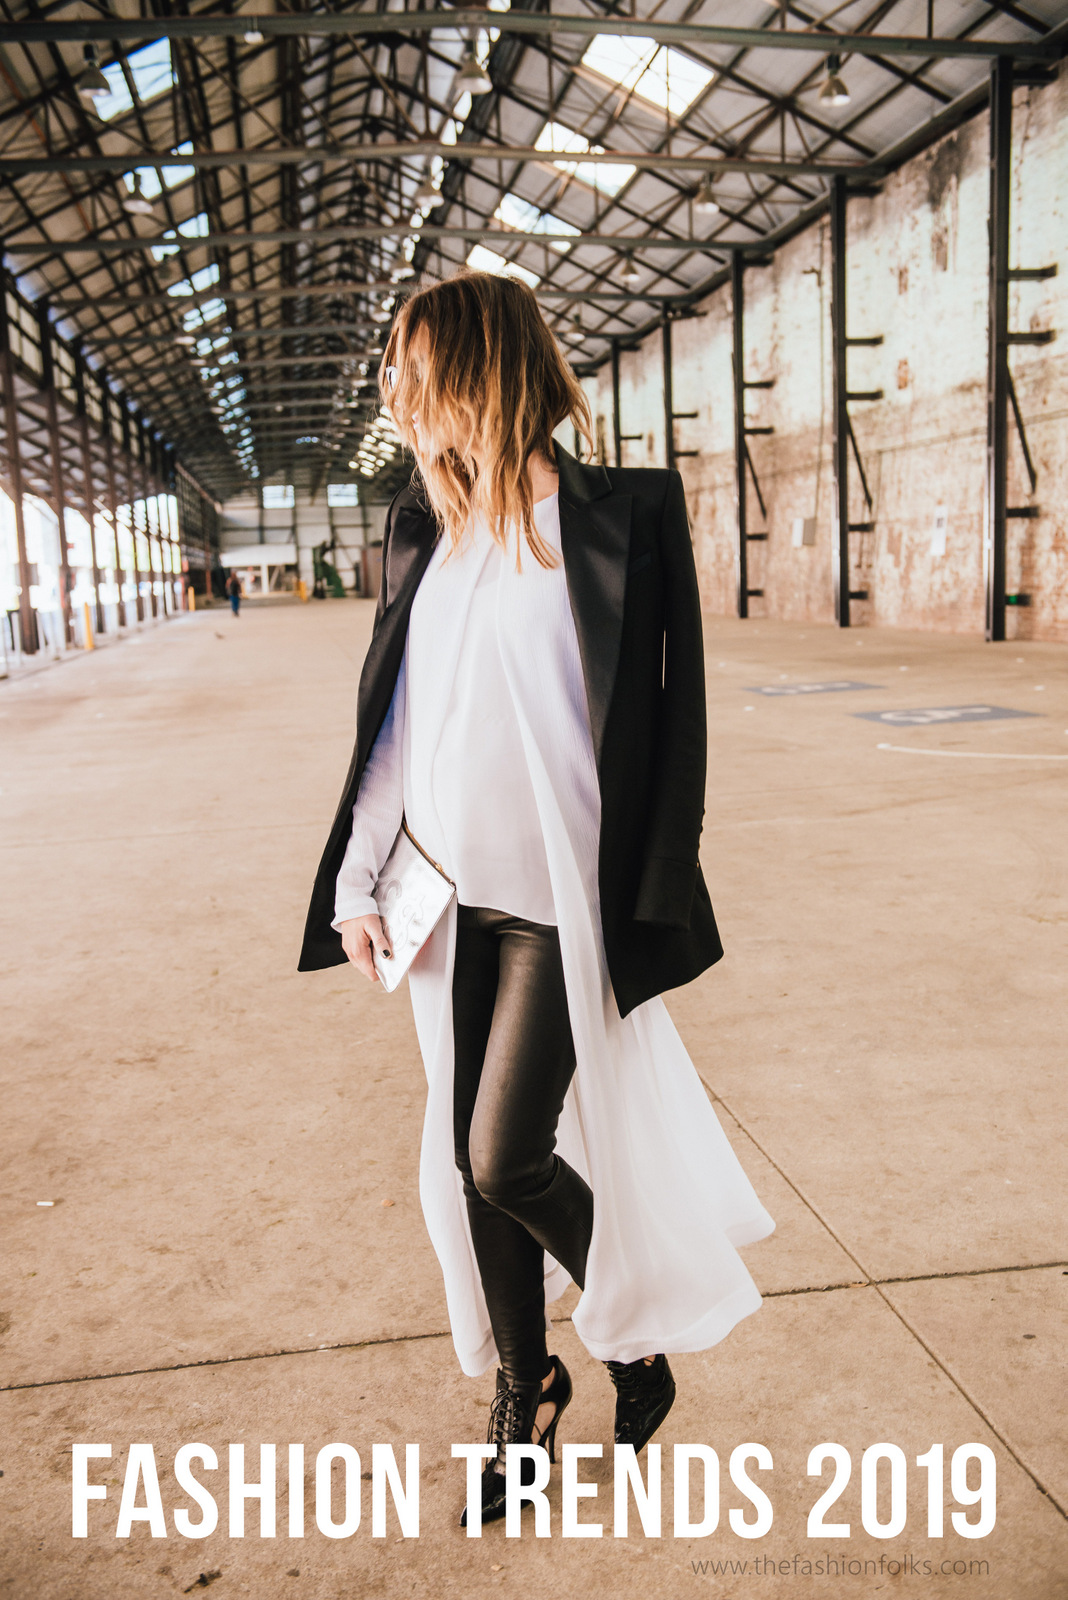 Fashion Trends 2019 White Shirt Dress Black Blazer Shoes